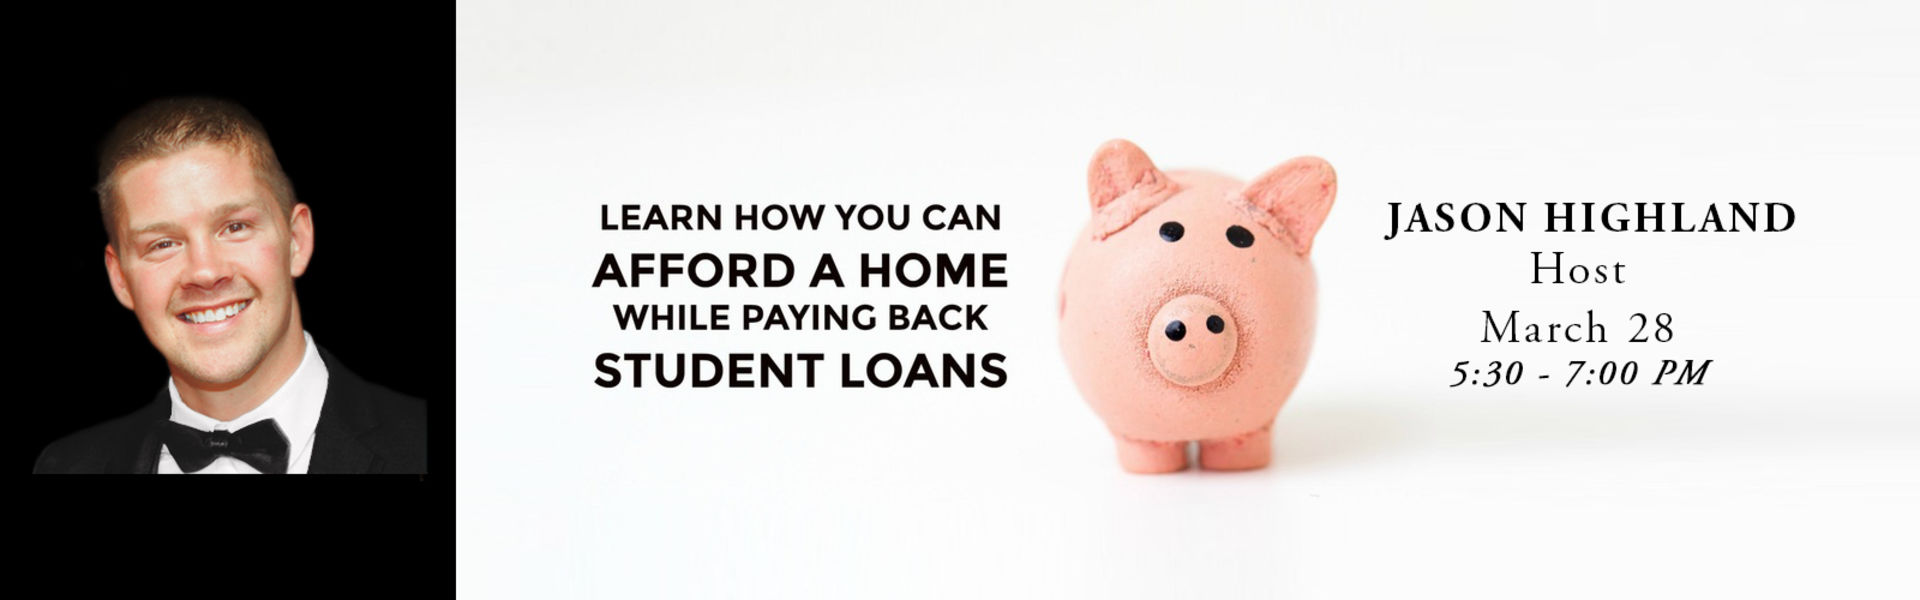 Jason Co-hosts Seminar on Home Buying and Student Debt